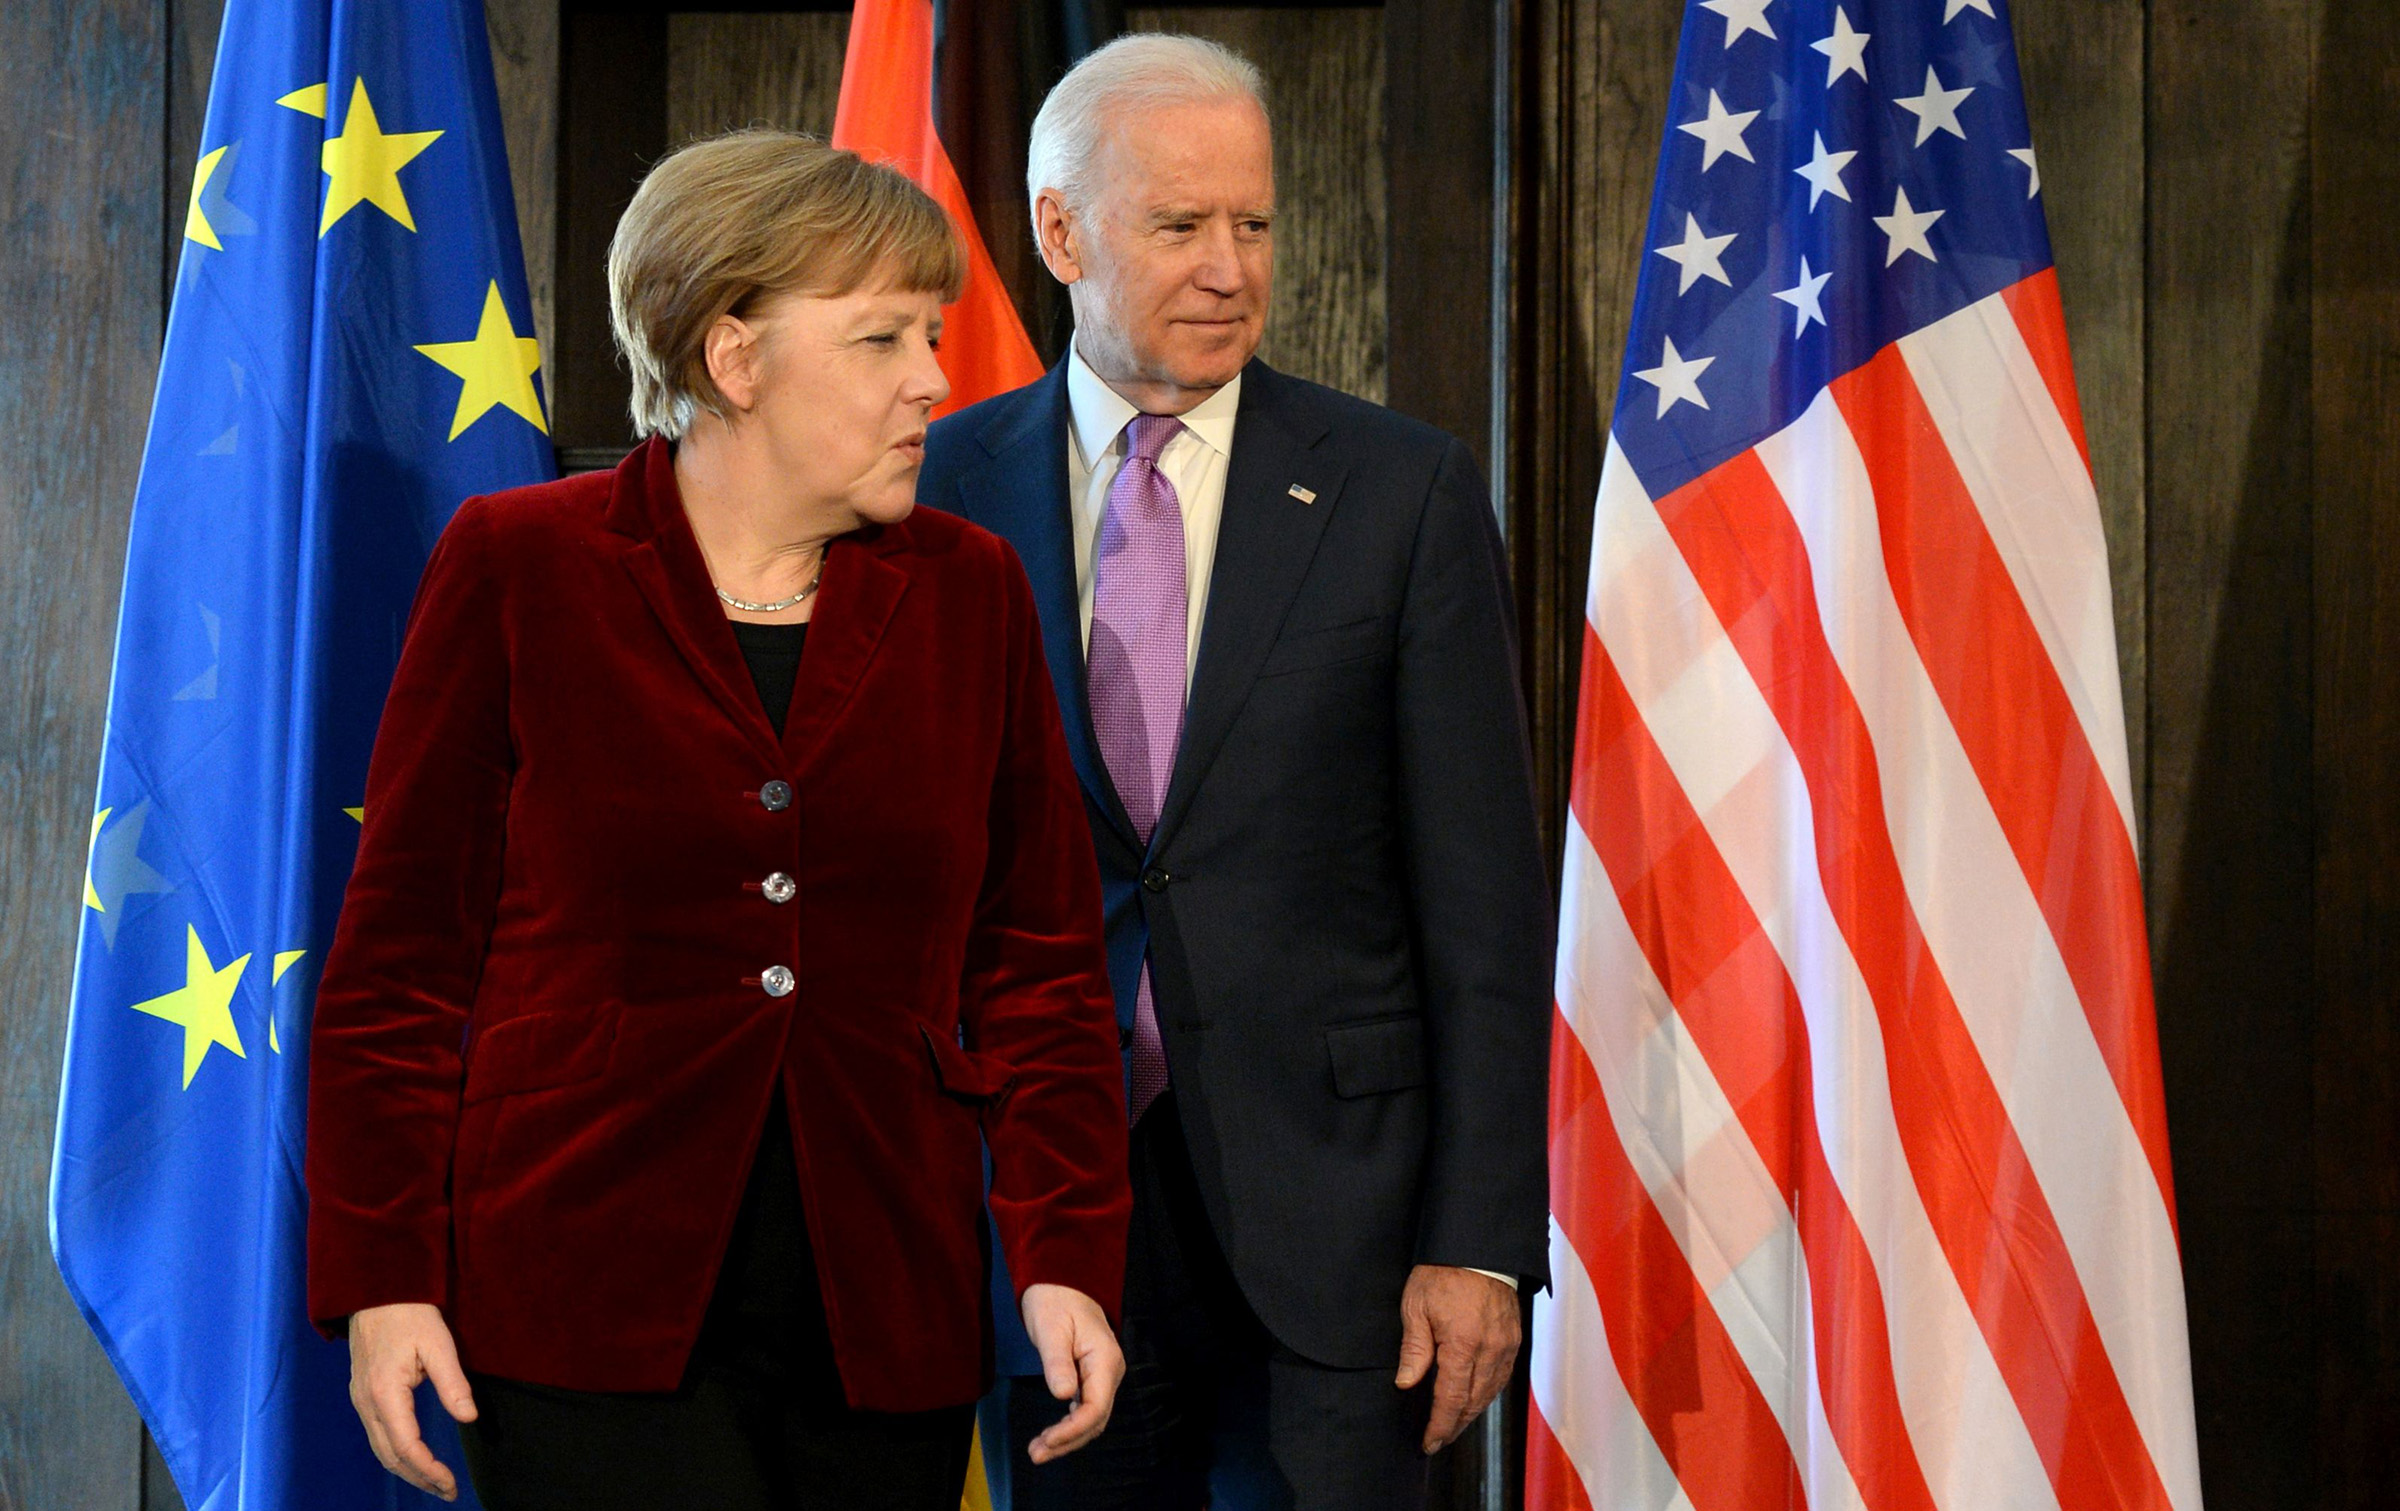 German Chancellor Angela Merkel and former US Vice President Joe Biden  during the 51st Munich Security Conference (MSC) in Munich, on Feb. 7,  2015.